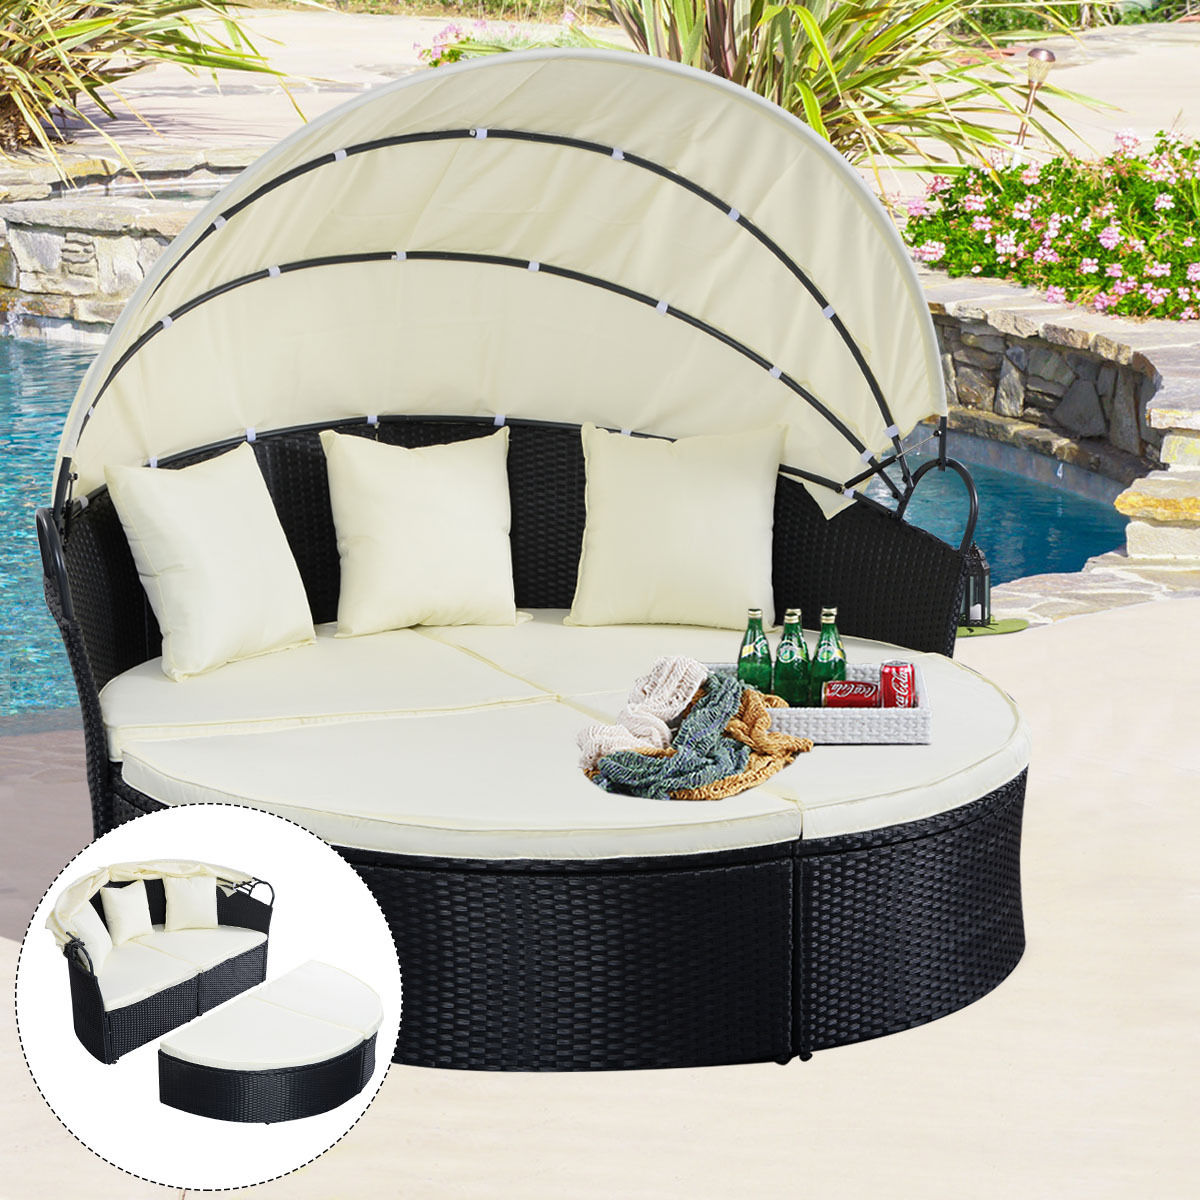 Costway Outdoor Patio Sofa Furniture Round Retractable Canopy Daybed Black  Wicker Rattan   Walmart.com